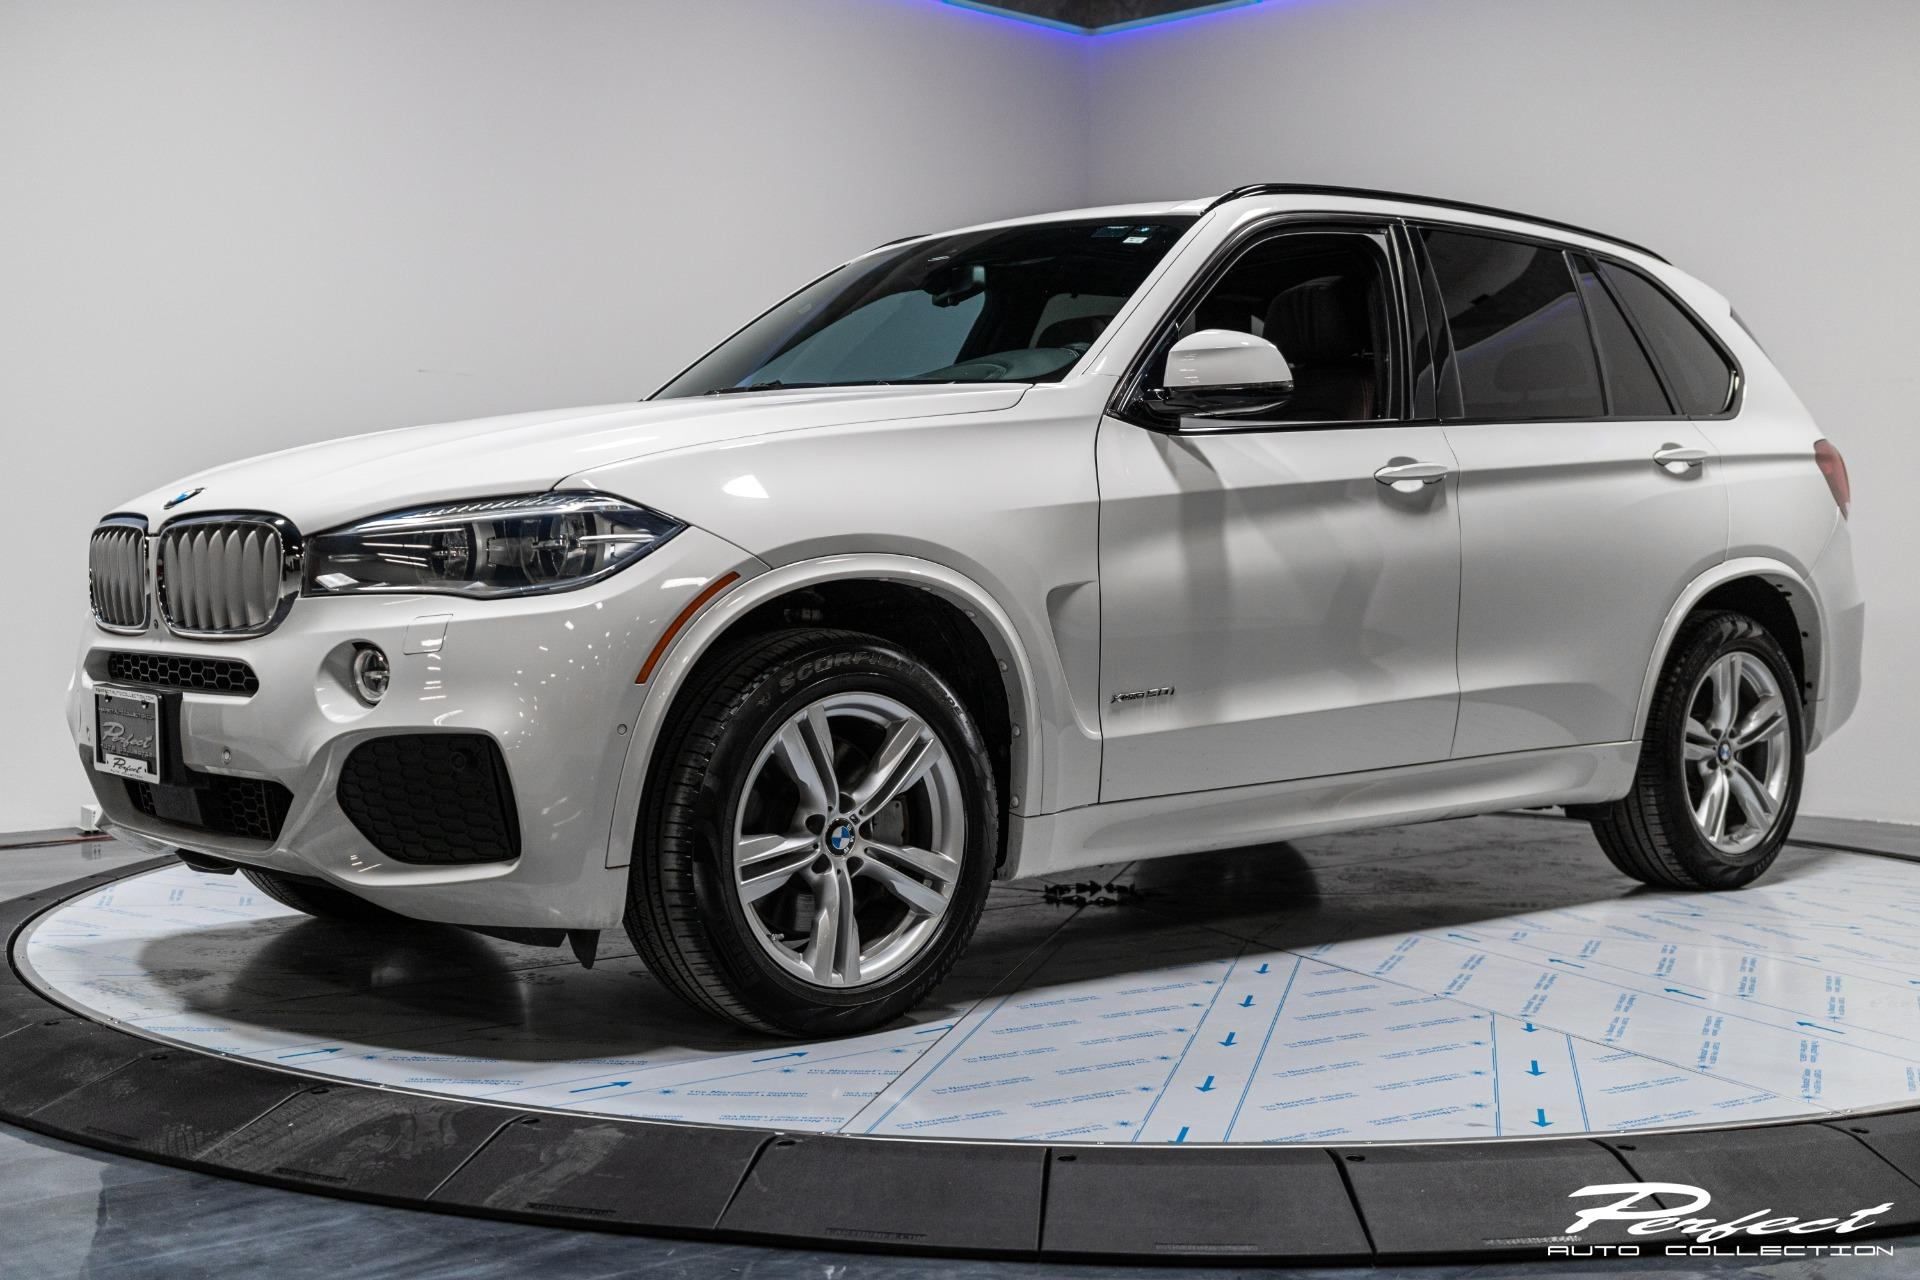 Used 2016 BMW X5 xDrive50i M Sport for sale Sold at Perfect Auto Collection in Akron OH 44310 1